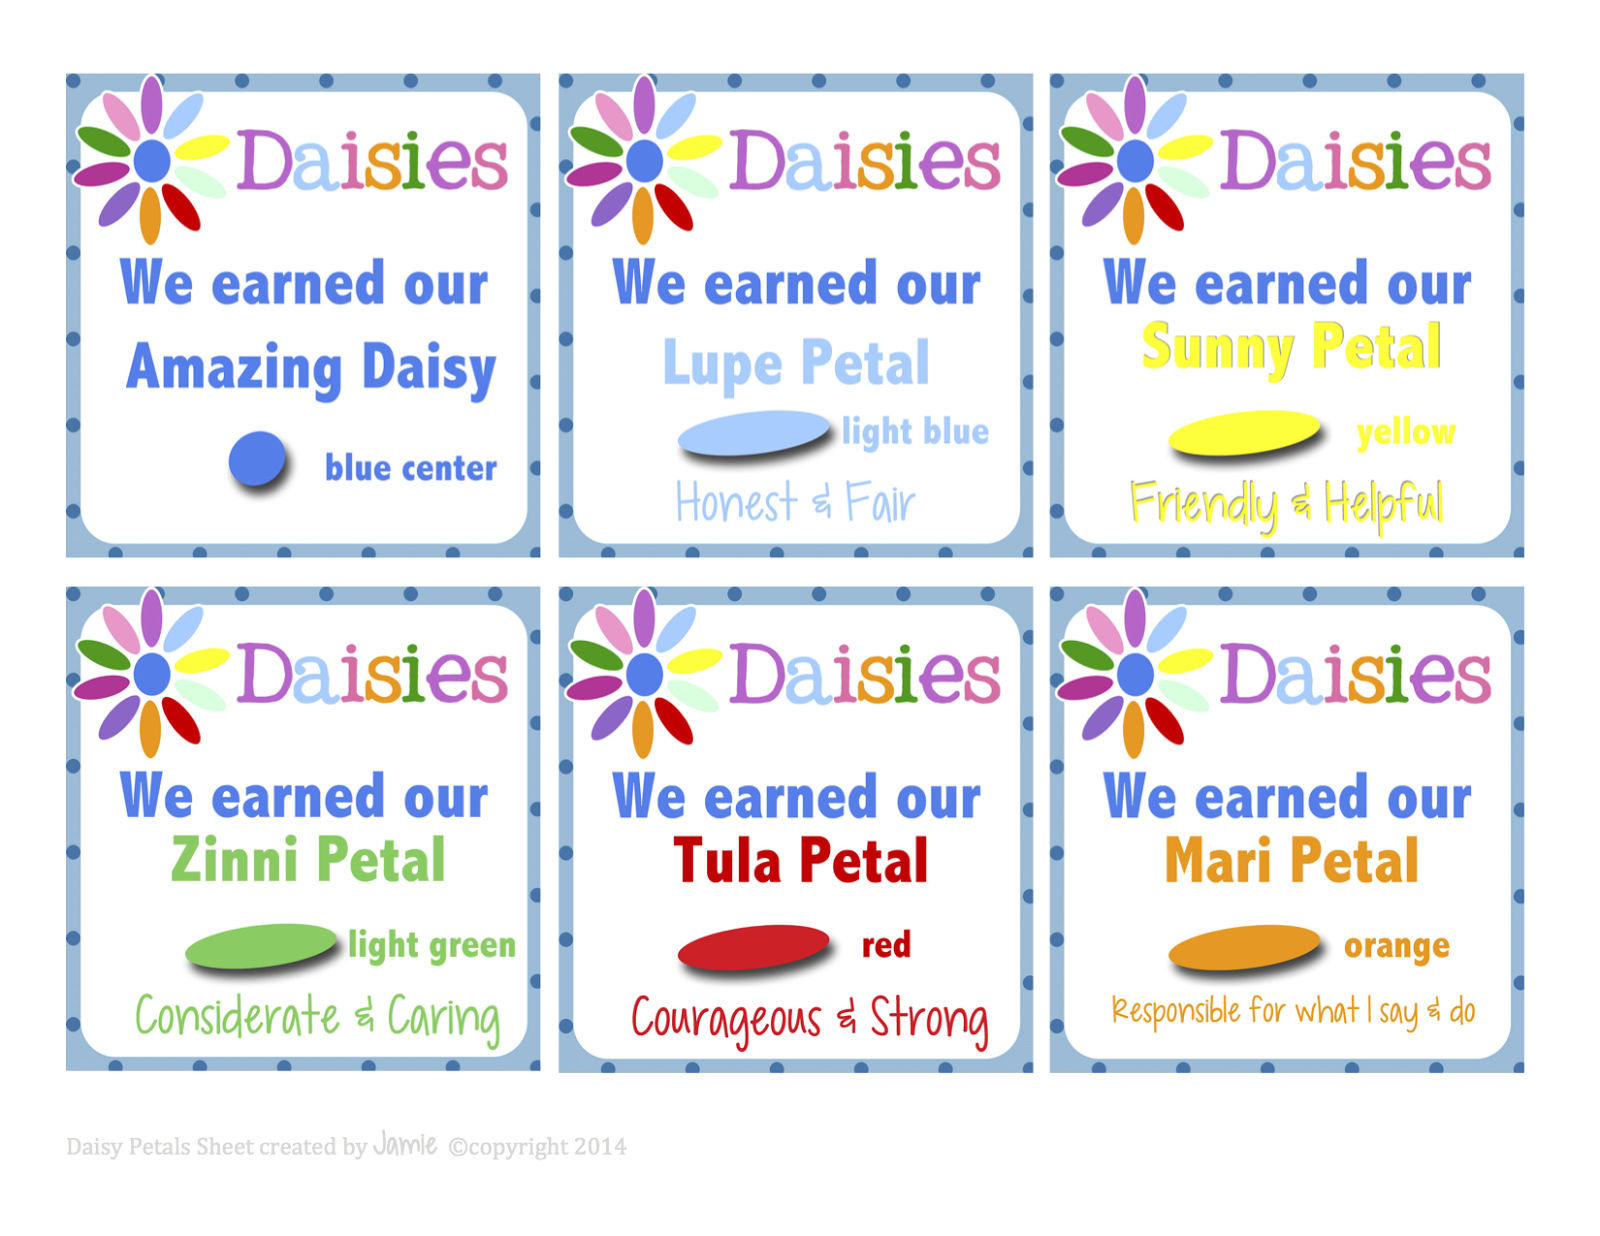 Free coloring pages for girl scouts - Girl Scouts Daisy Petal Cards Free Printable